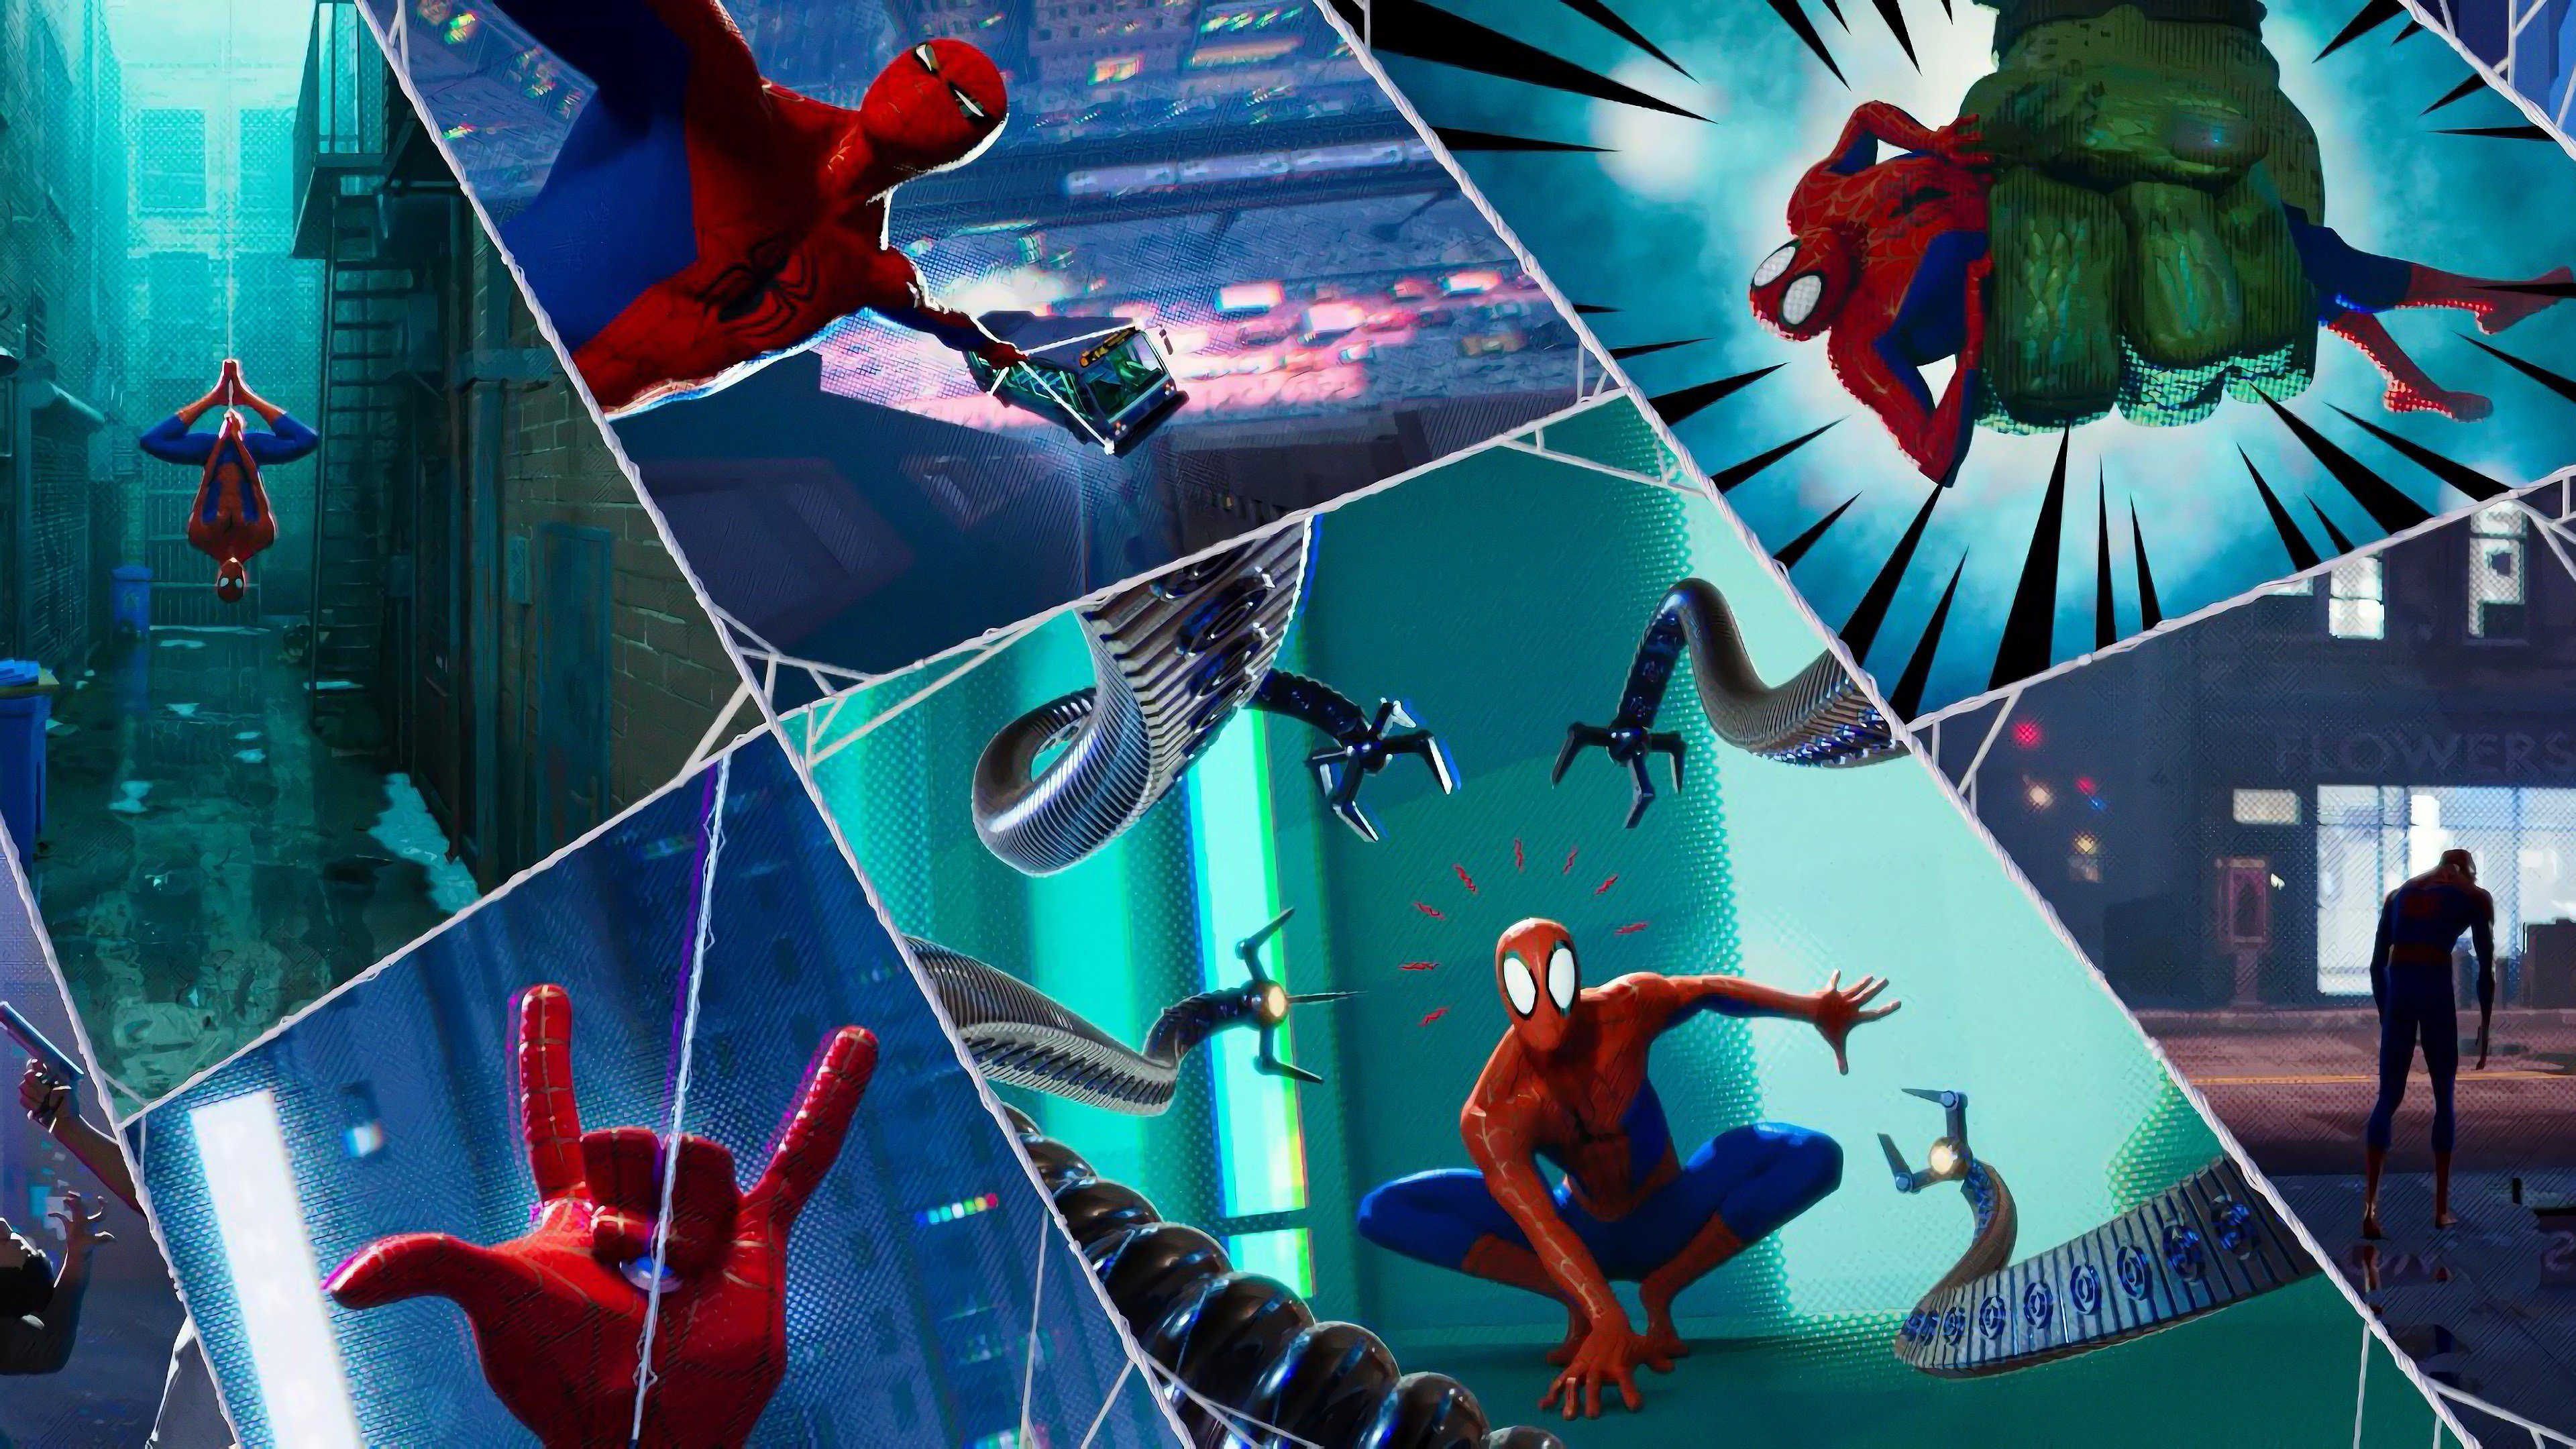 Spider Verse 4k Wallpapers For Your Desktop Or Mobile Screen Free